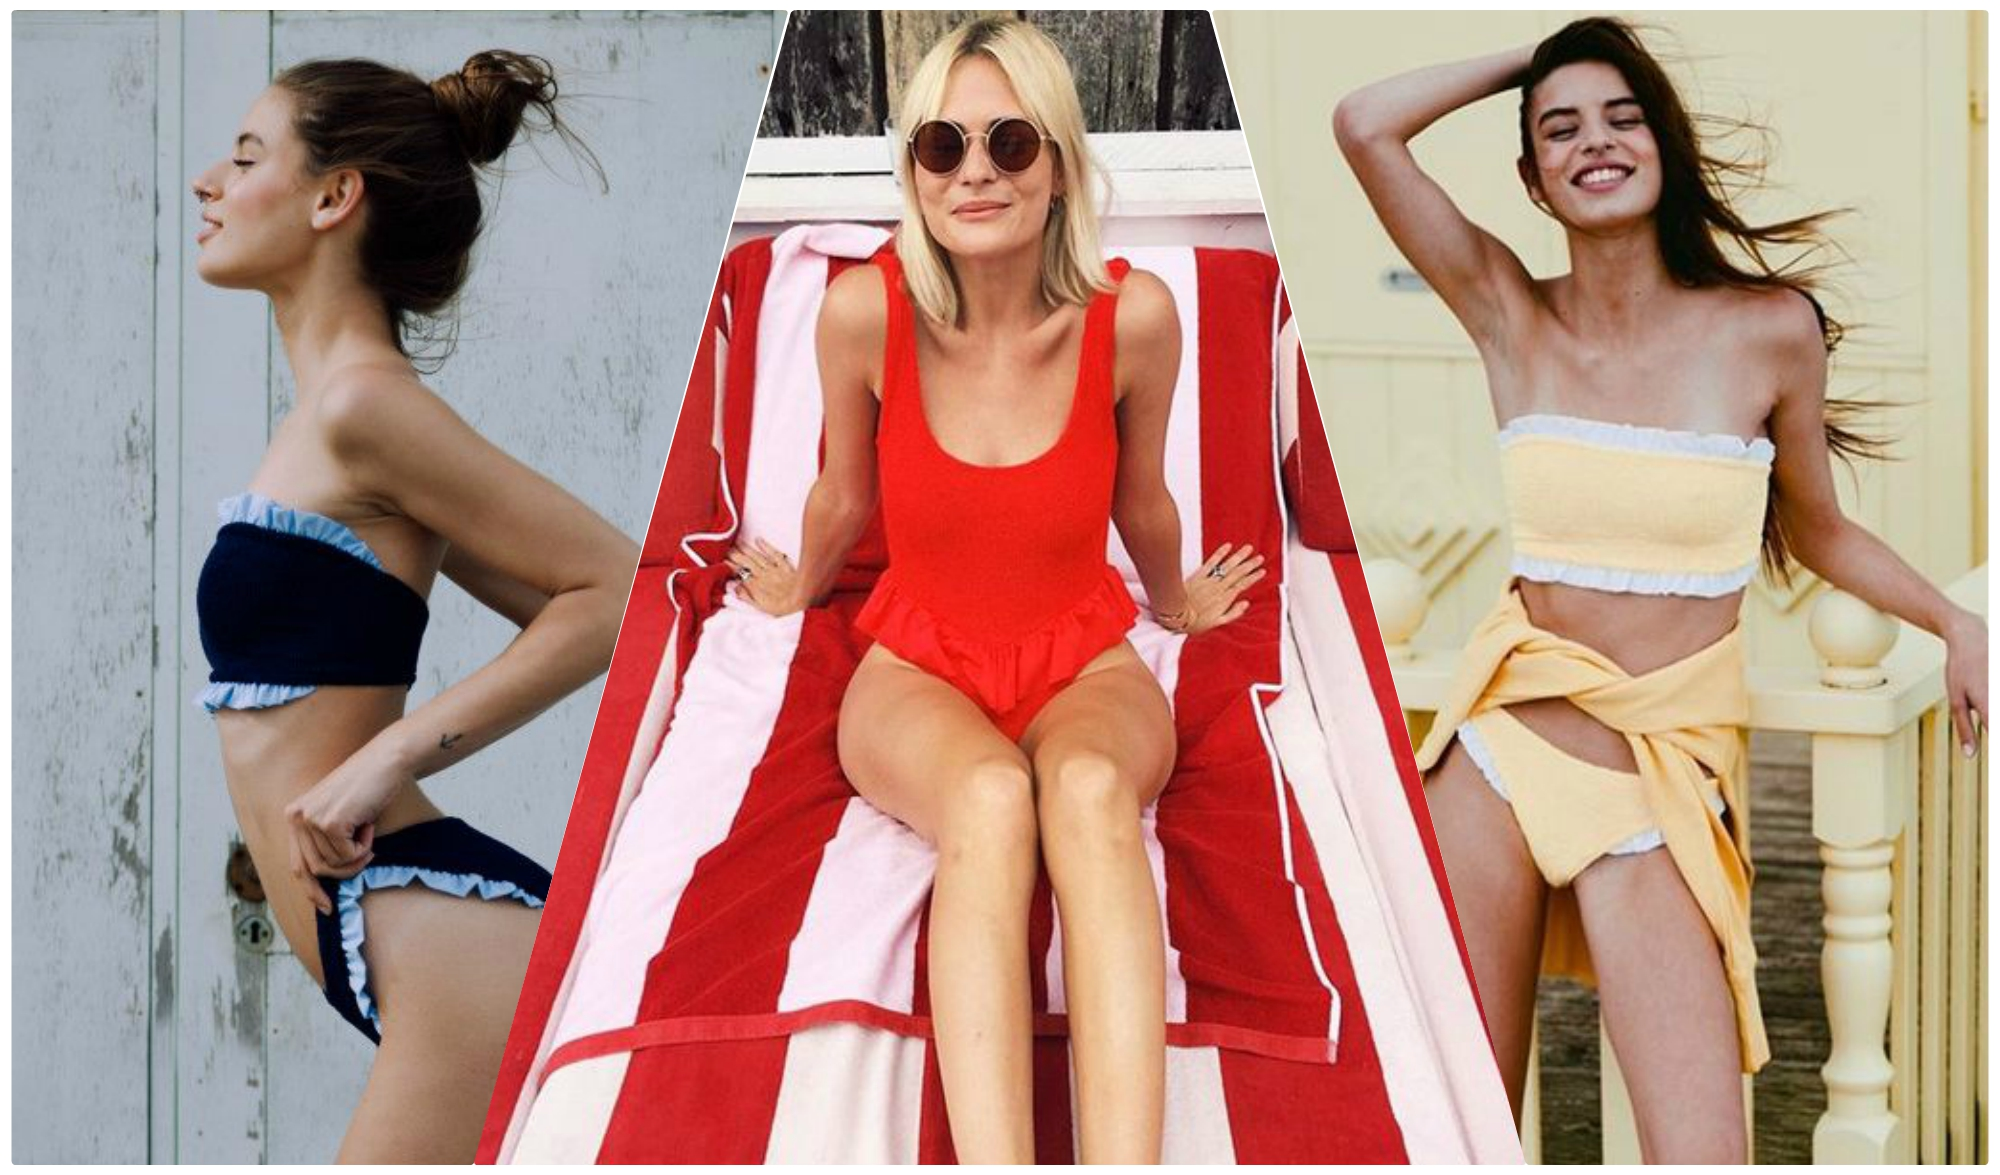 The Most Iconic Swimwear Brands3